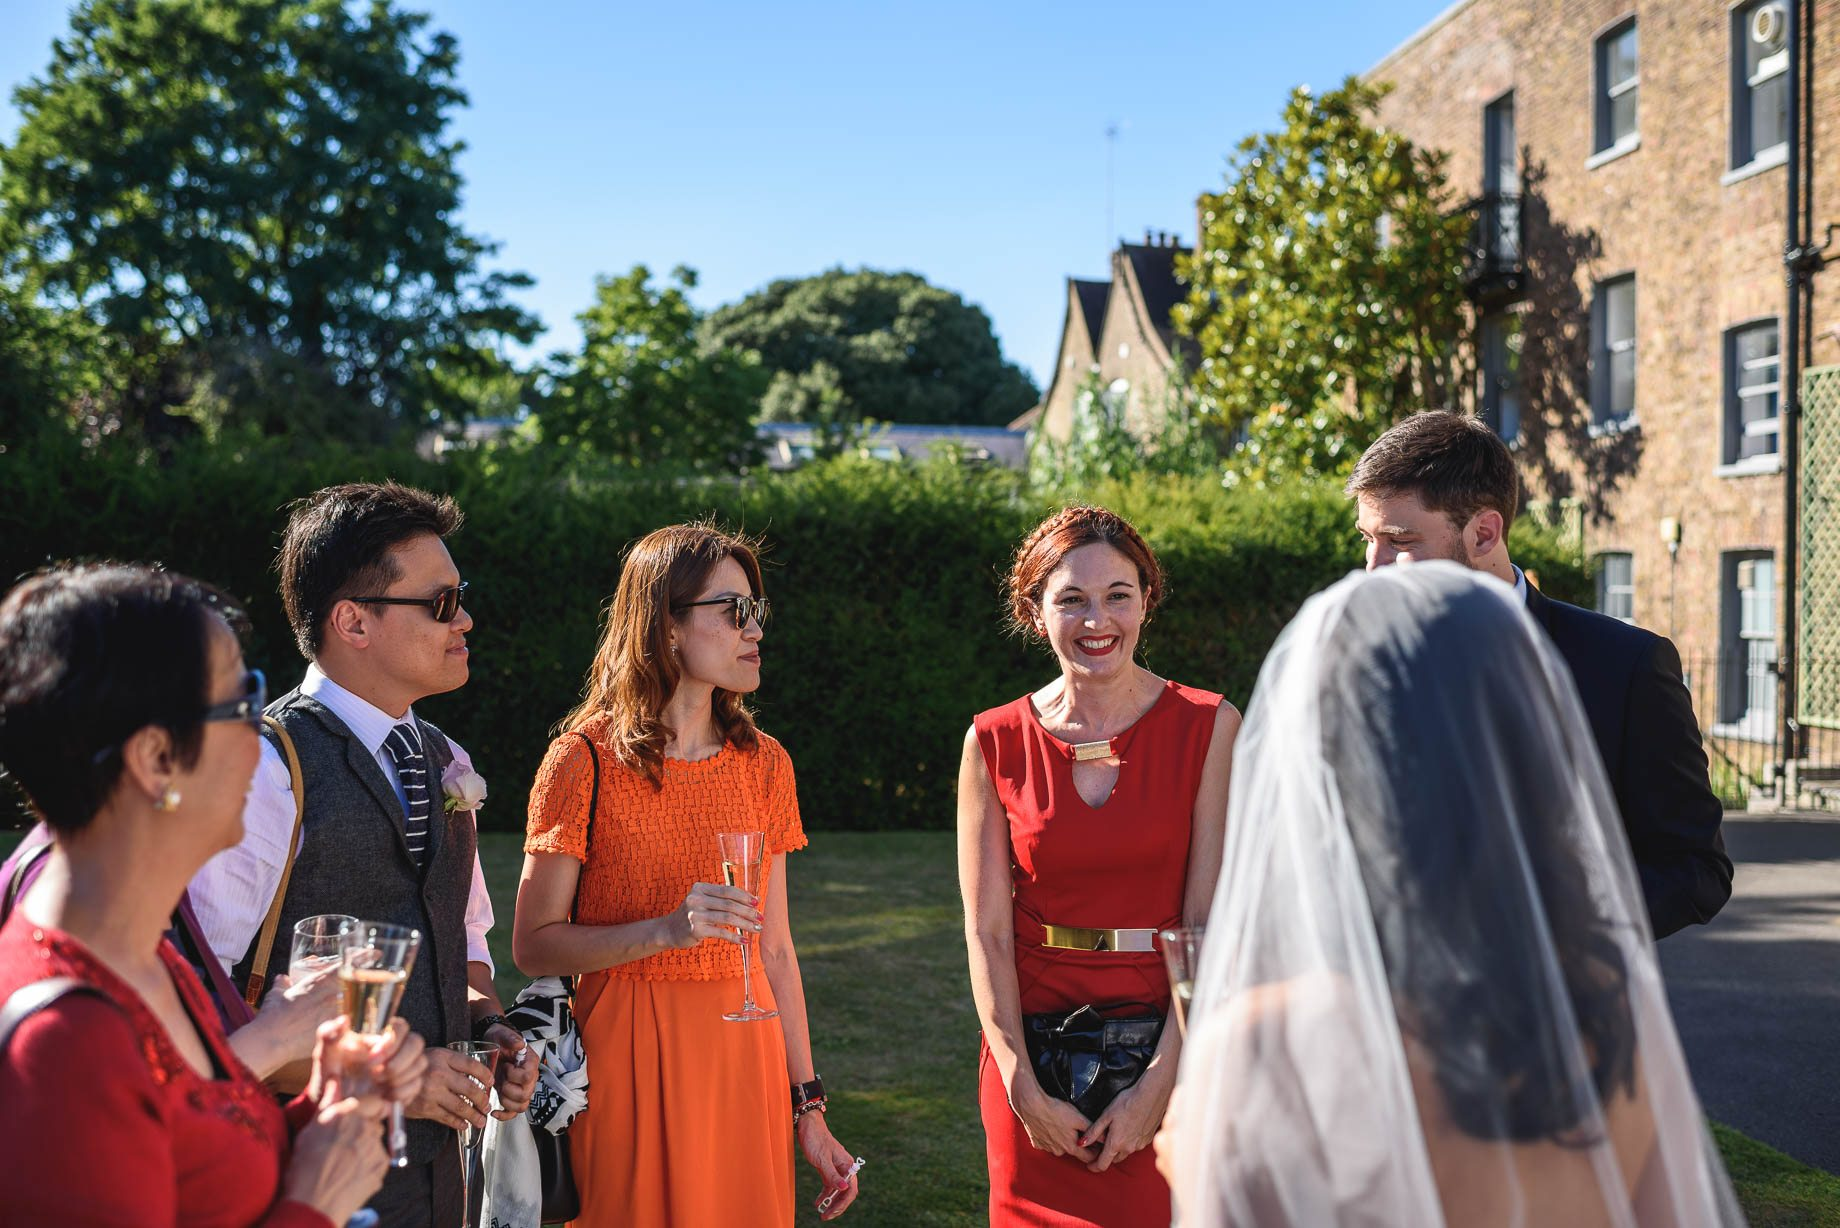 Kew Gardens wedding photography - Guy Collier Photography - Gloria and Frederik (62 of 173)